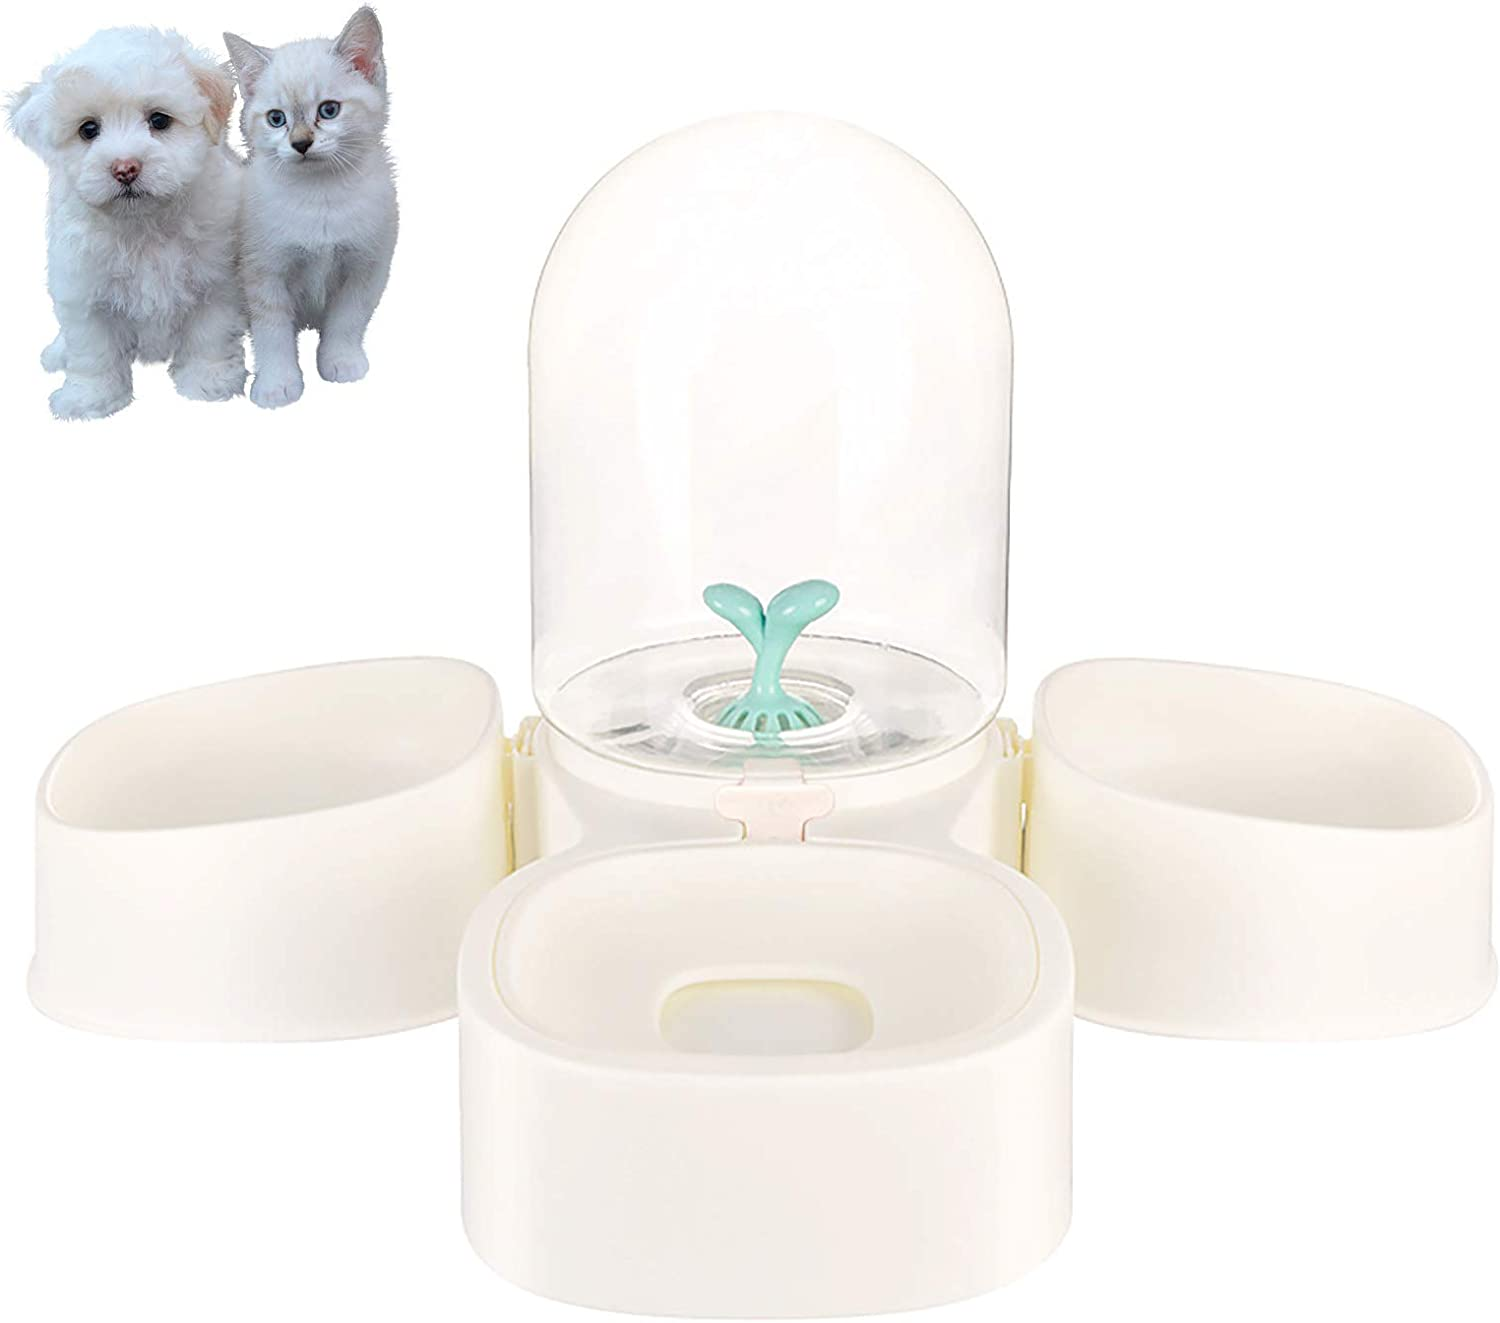 PetEiZi 2 in 1 Double Pet Cat Food Feeder Bowls 2.0L Large Automatic Unplugged Dog Water Dispenser Detachable No-Spill for Cats and Small Puppy Dogs